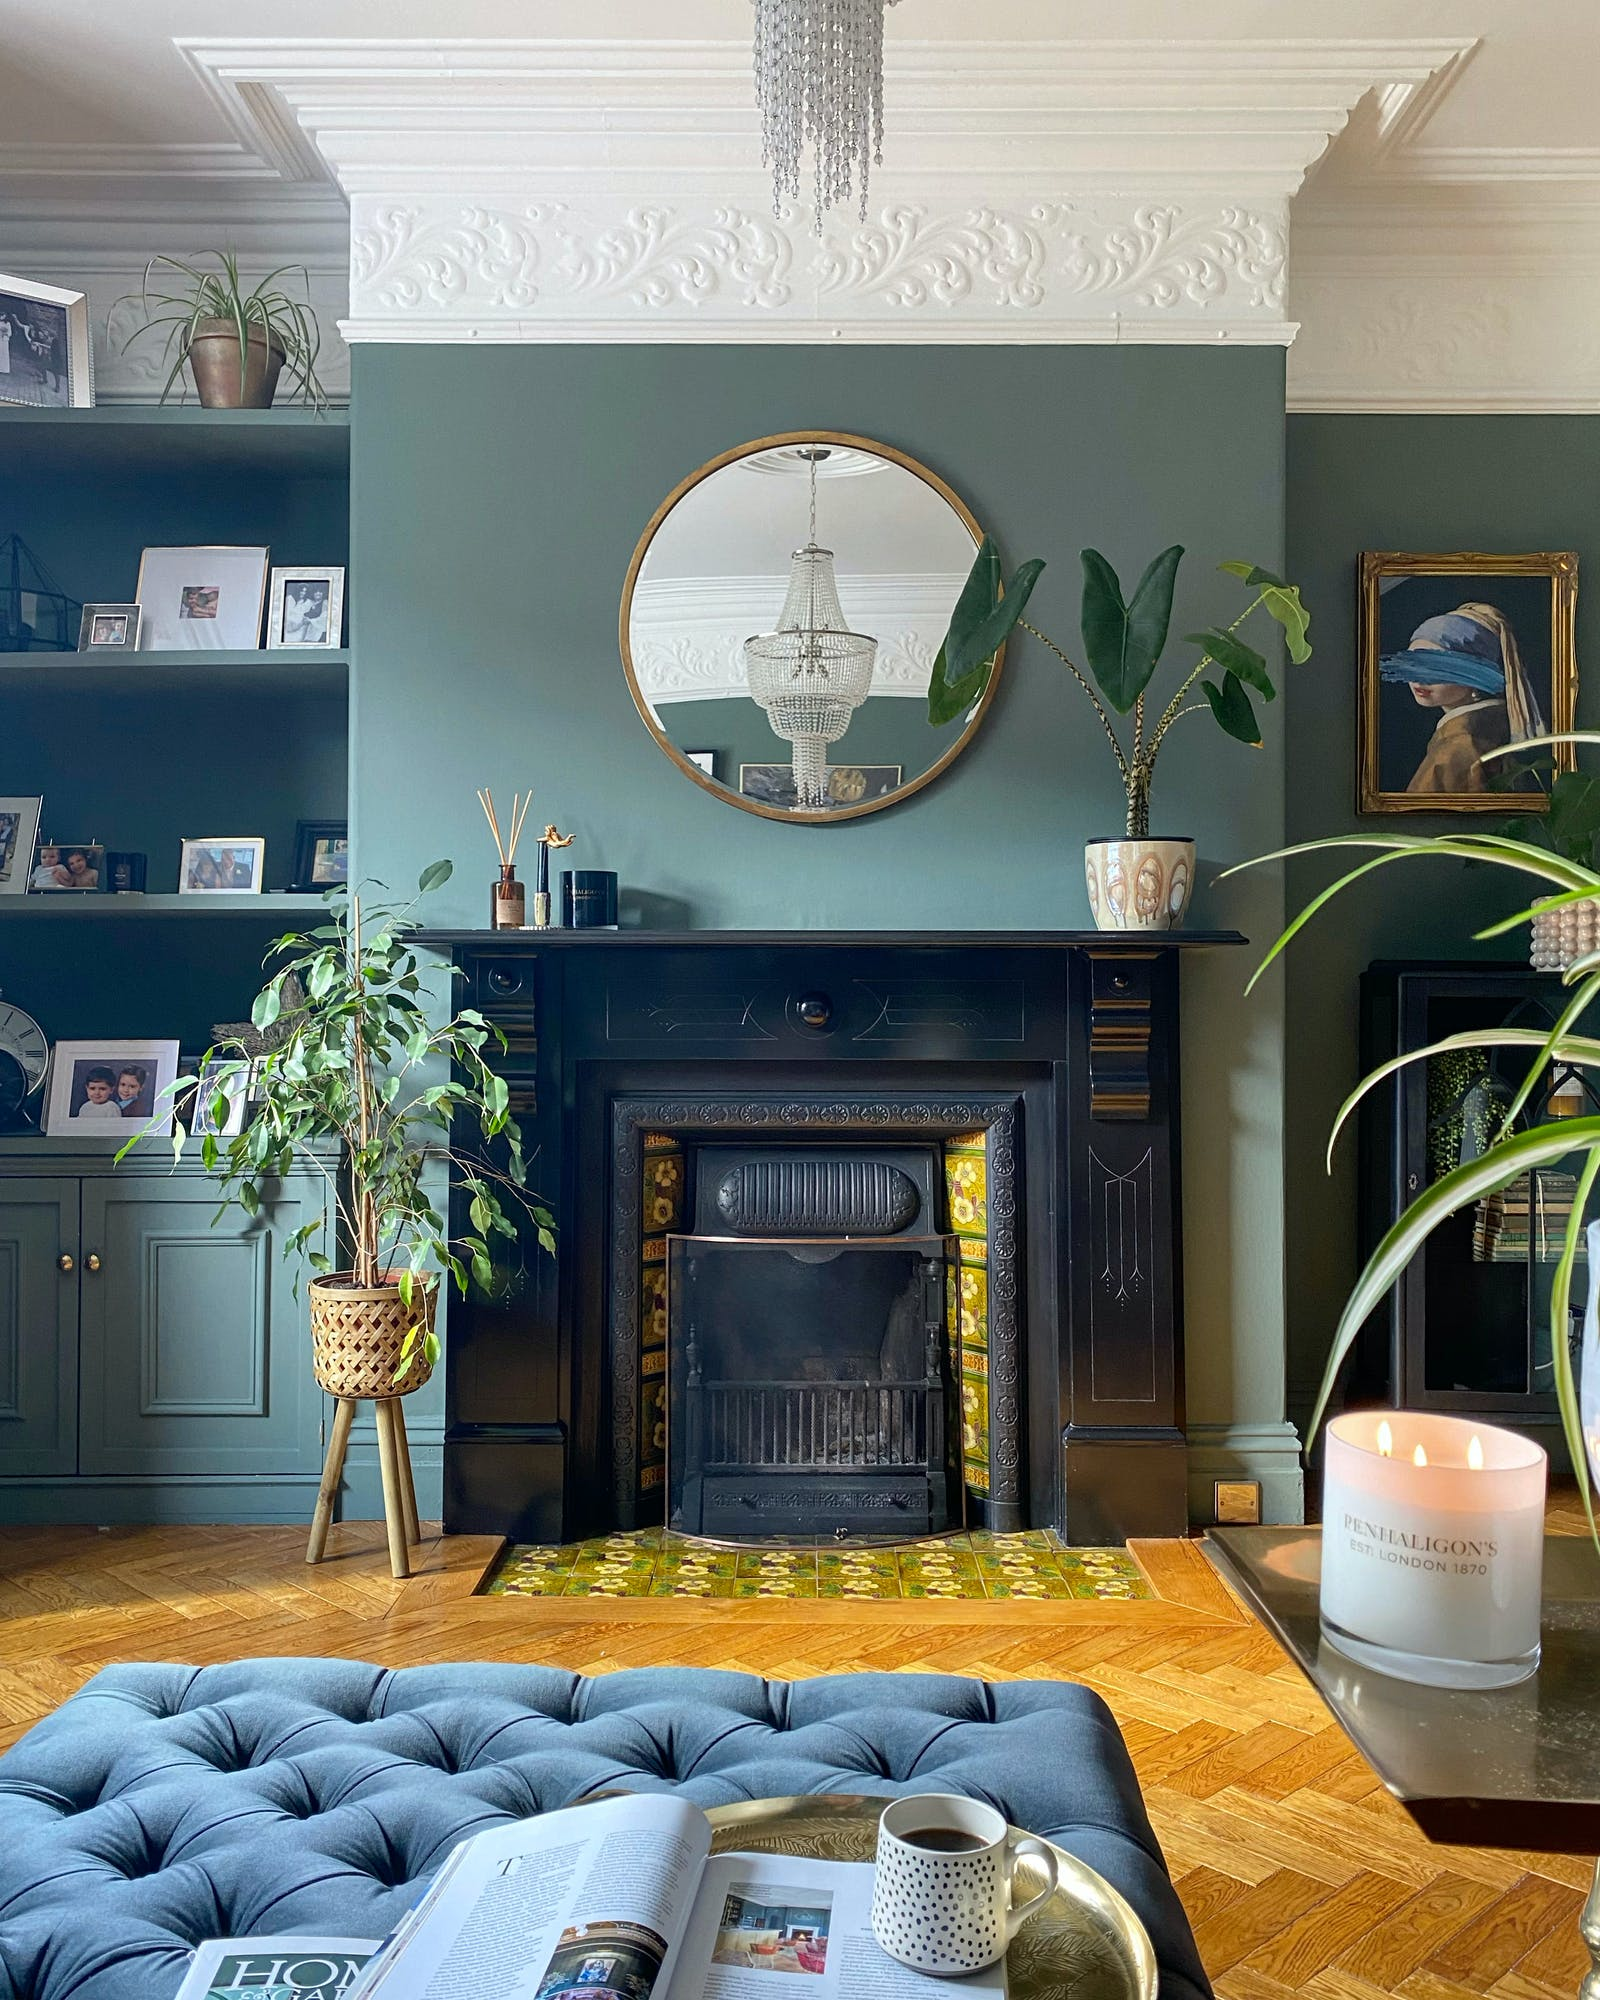 Living room painted in sage green with natural wood floor, navy blue sofa and plants